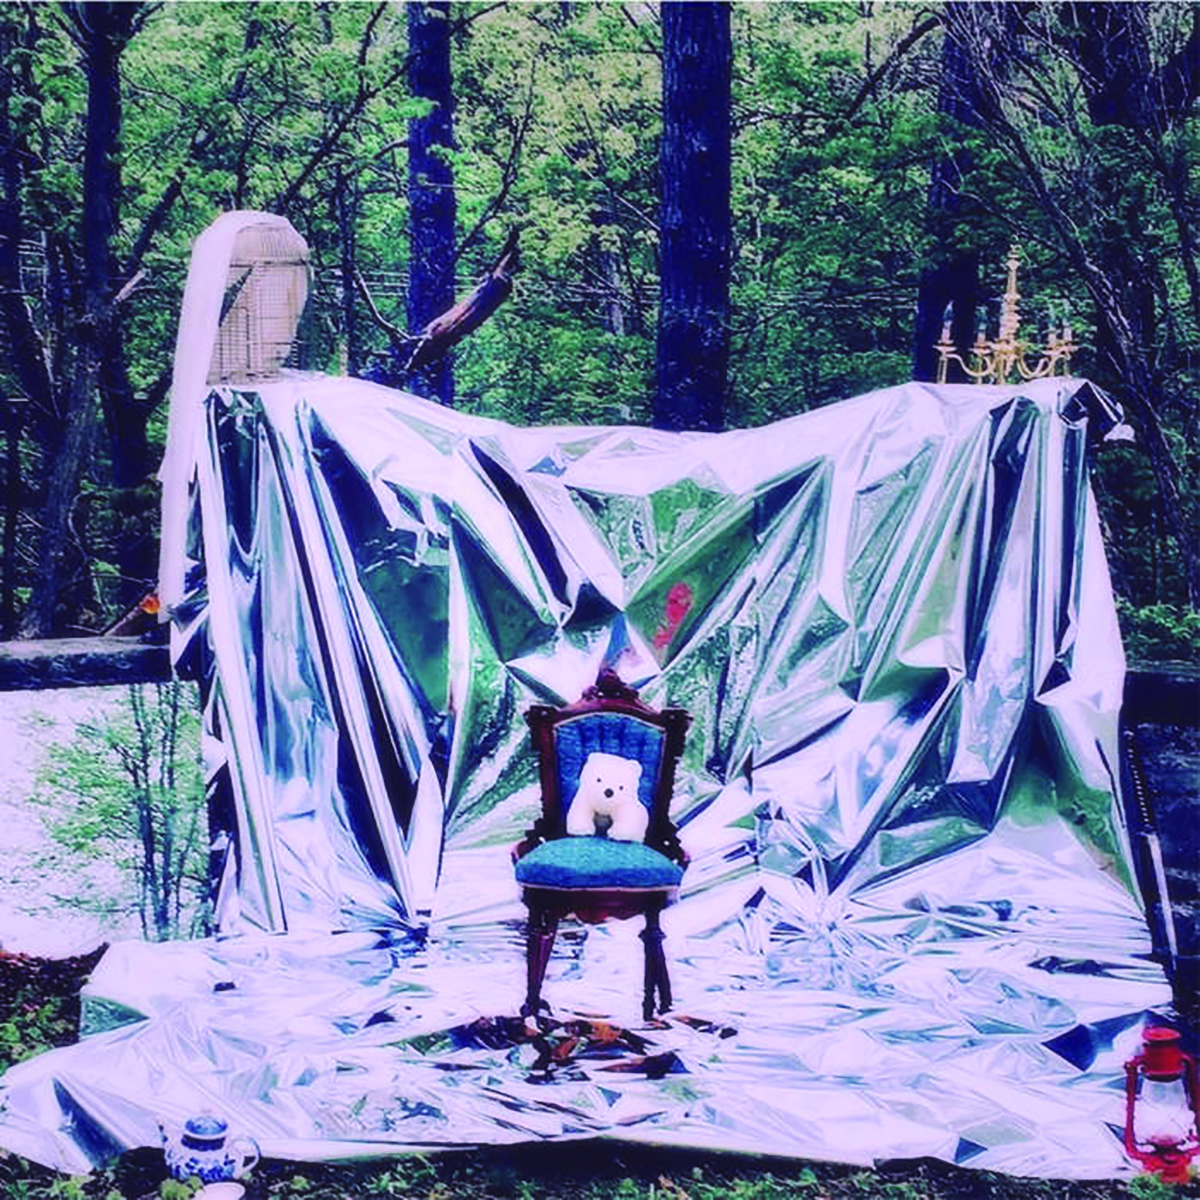 chair in a forest with shiny draped backdrop